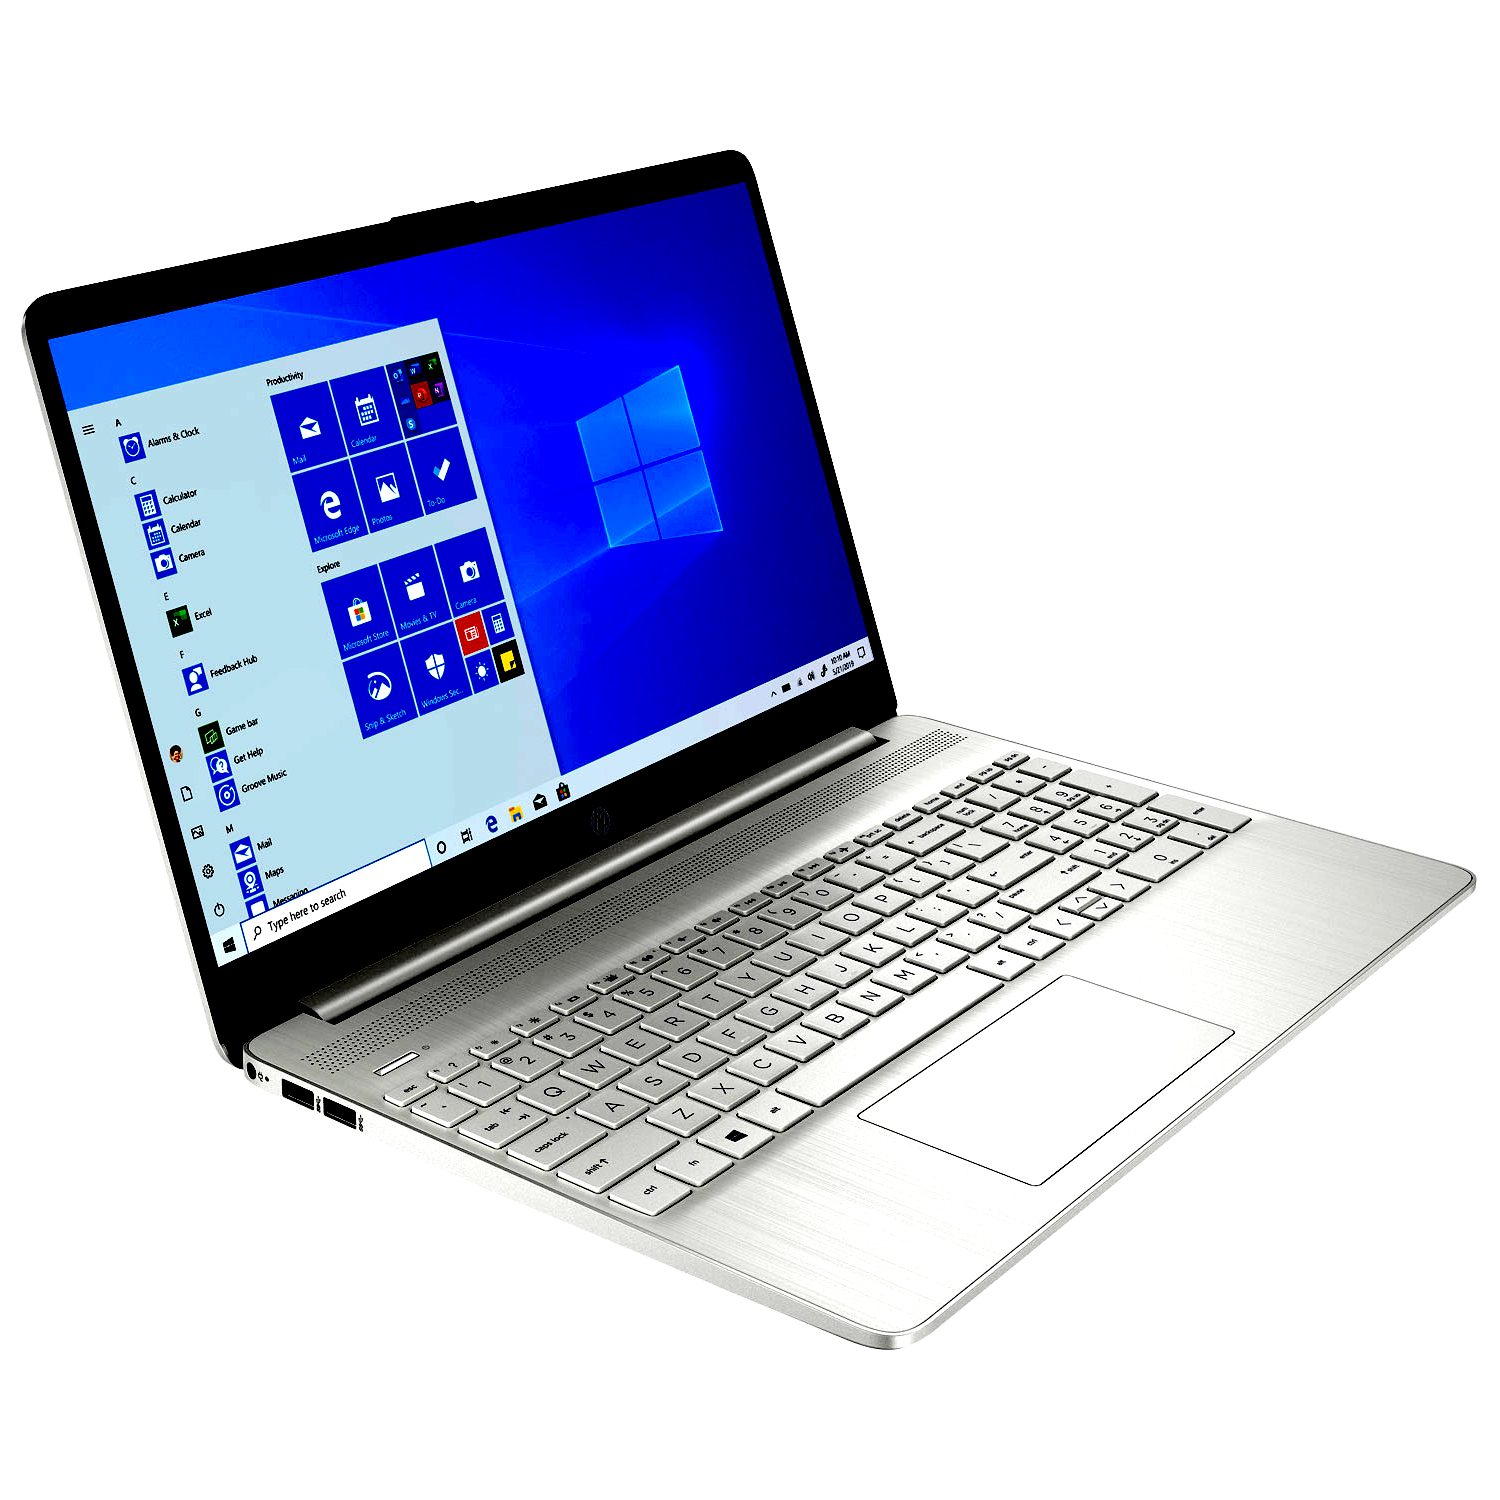 "HP 15.6"" Intel i7-1165G7 Up to 3.9GHz, 8GB Memory w/512GB SSD (Like Probook) Ultrabook"